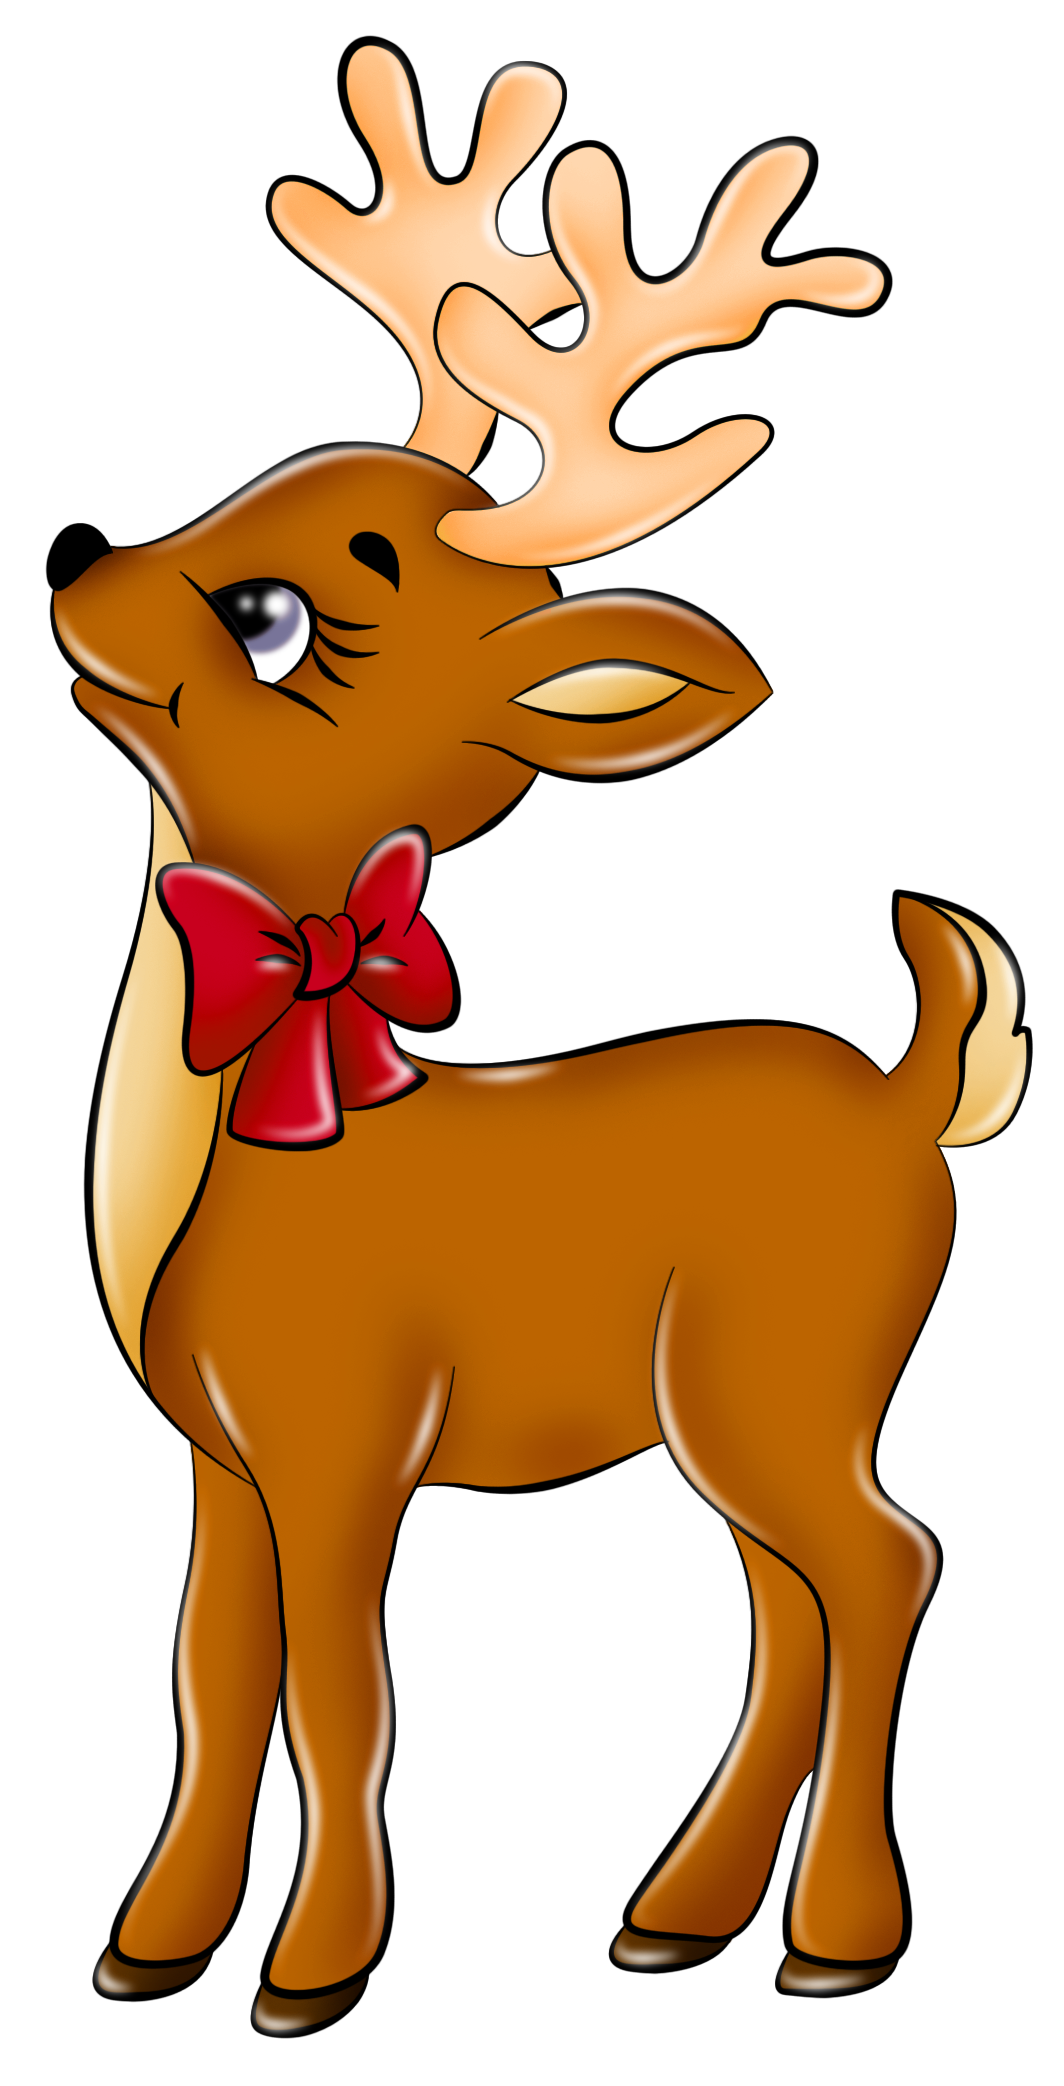 Reindeer clip art free image free clipart image 4